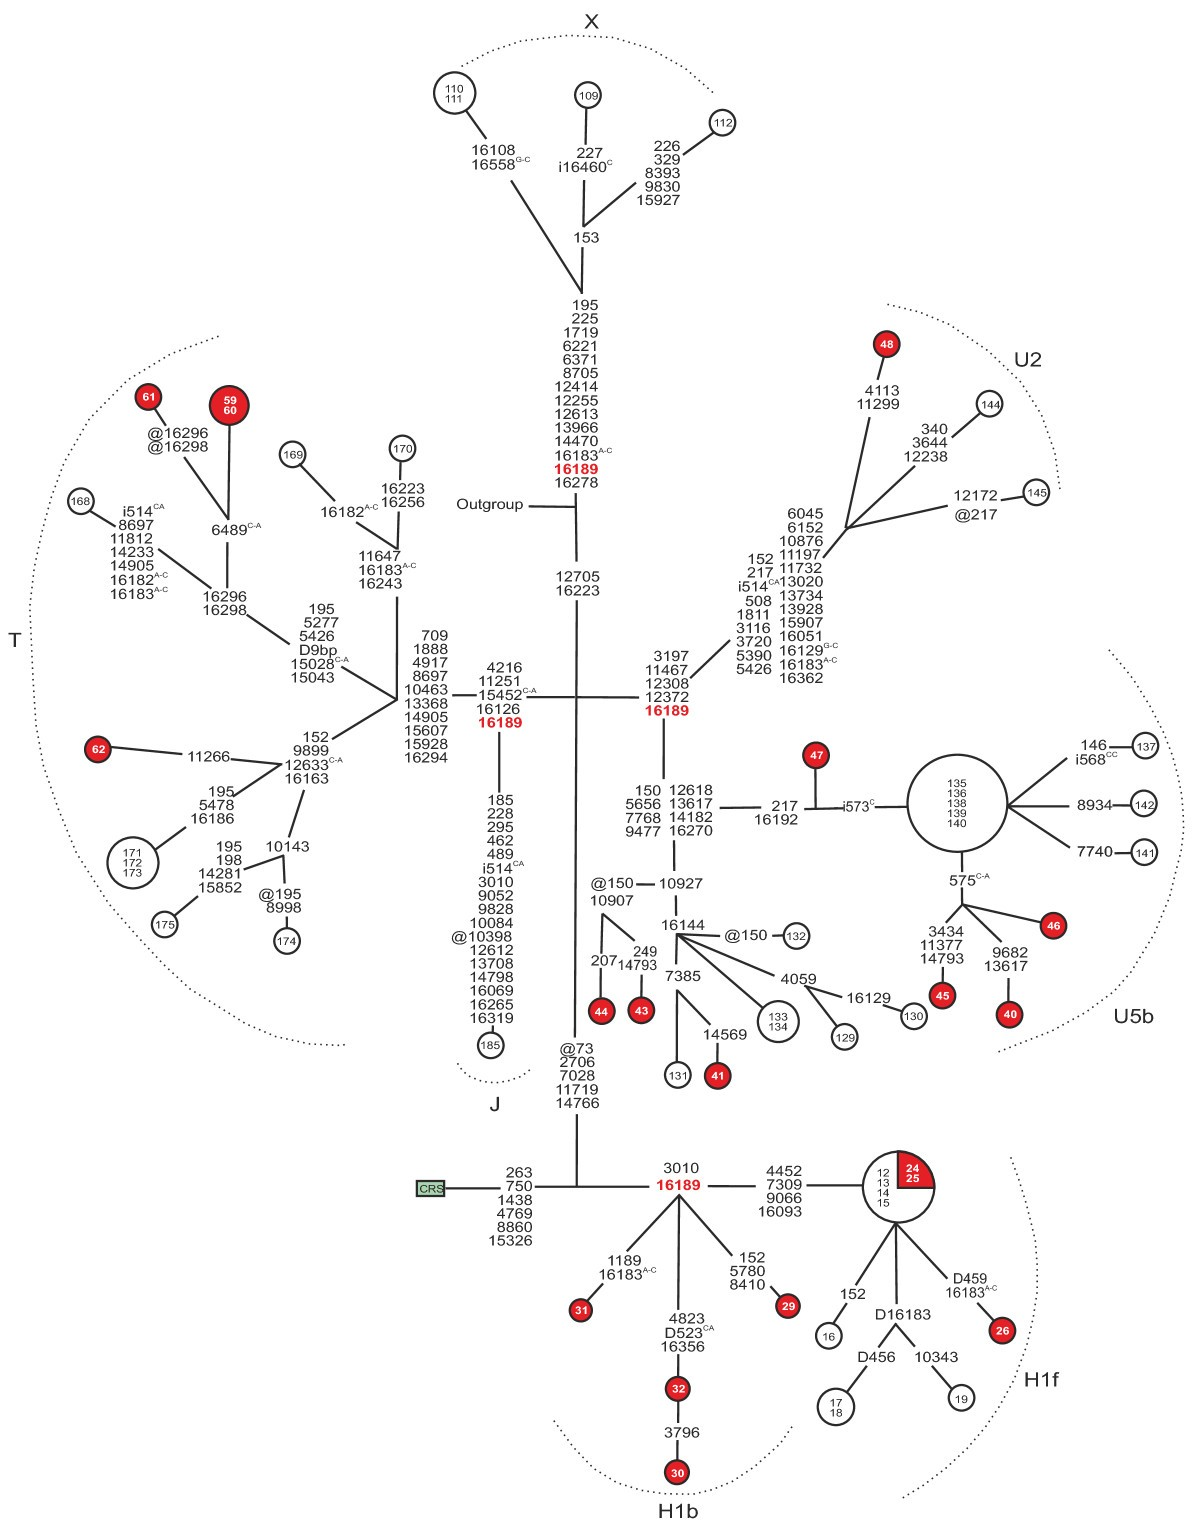 Mitochondrial Dna Sequence Variation In Finnish Patients With Circuit Diagram For Dc Motor Control By A Collins Figure 4